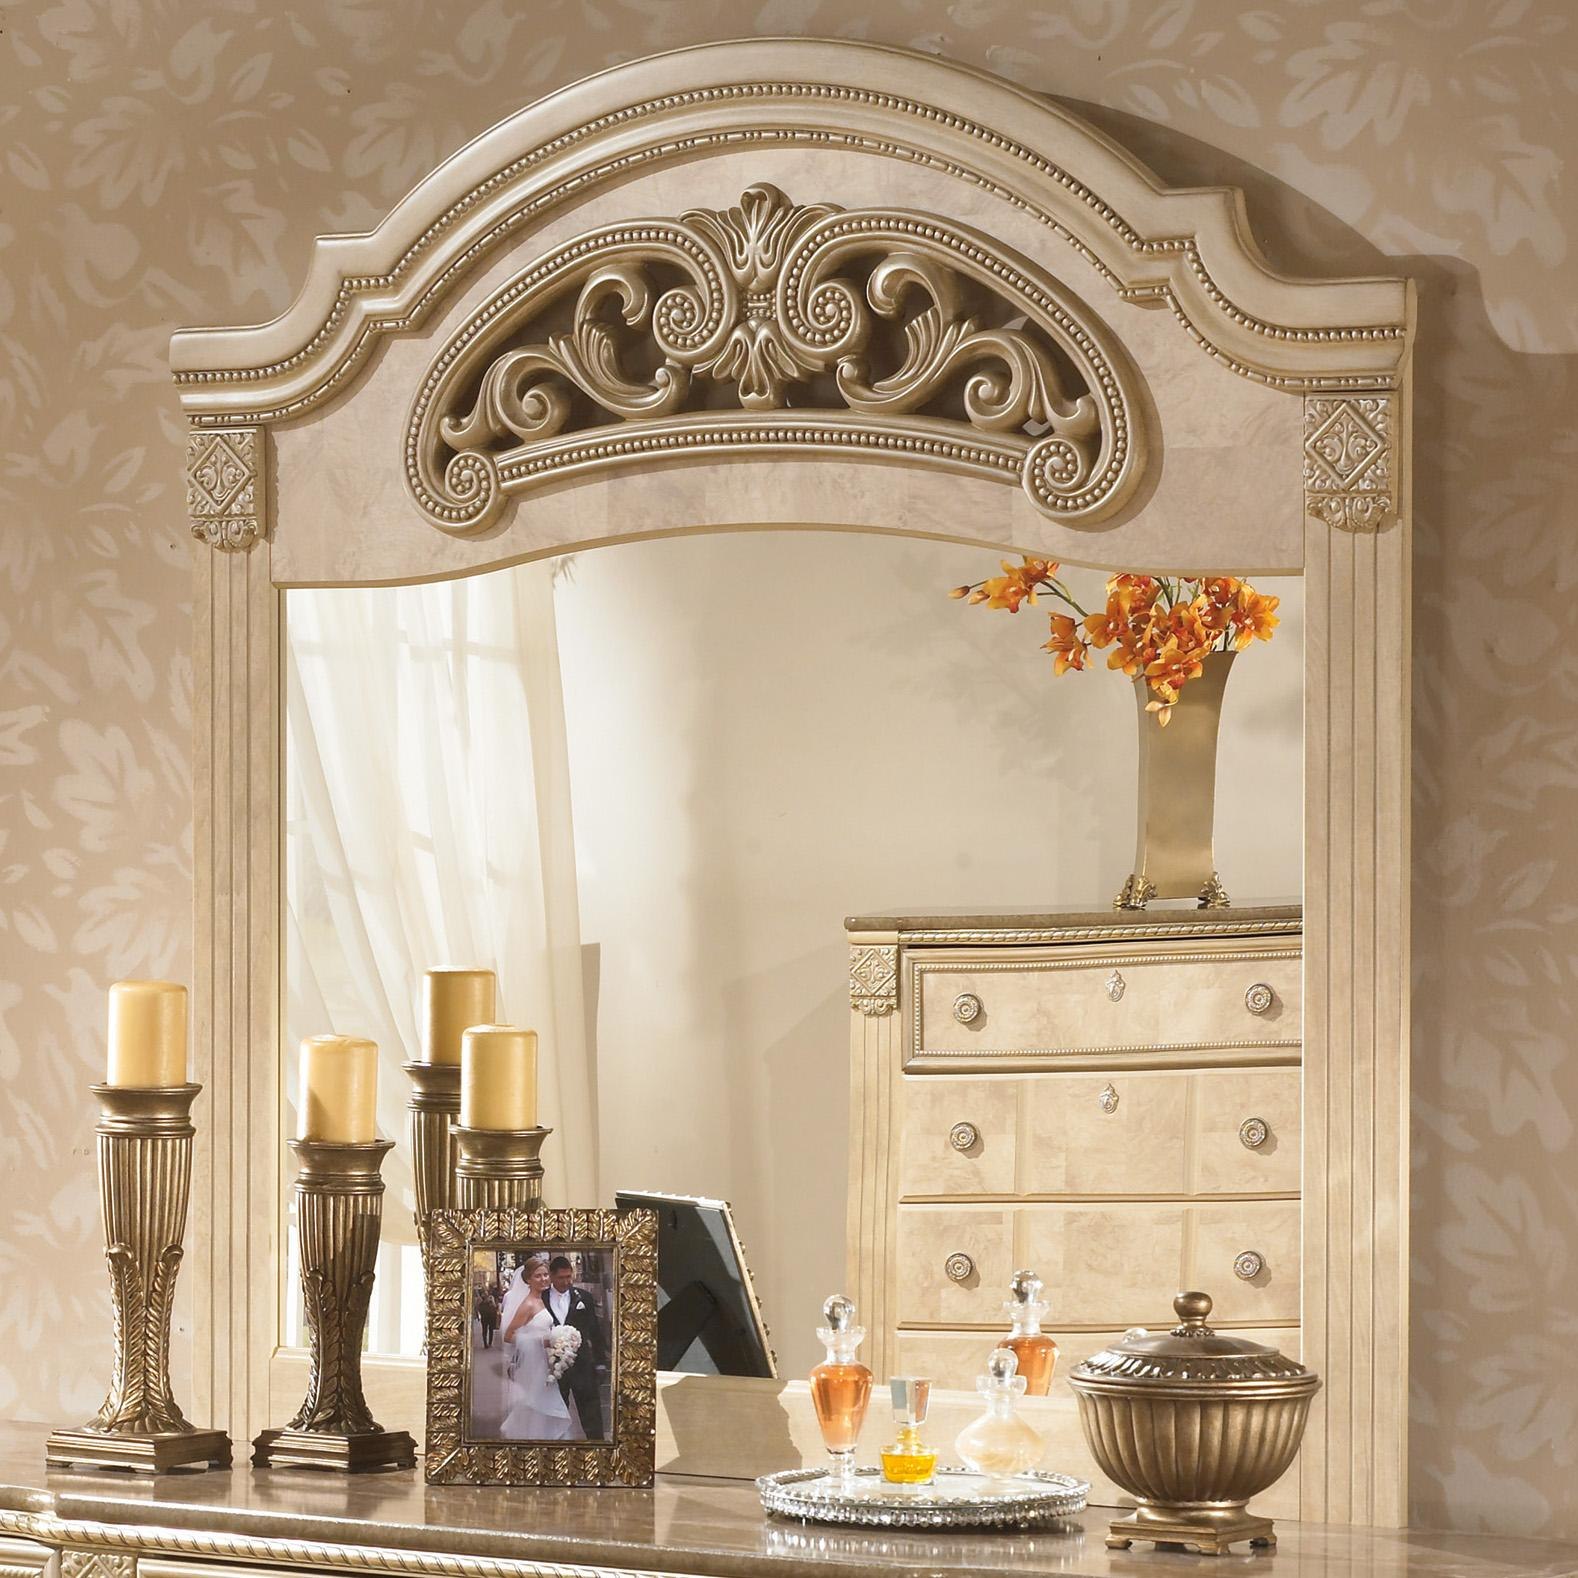 Signature Design by Ashley Saveaha Bedroom Mirror - Item Number: B346-36